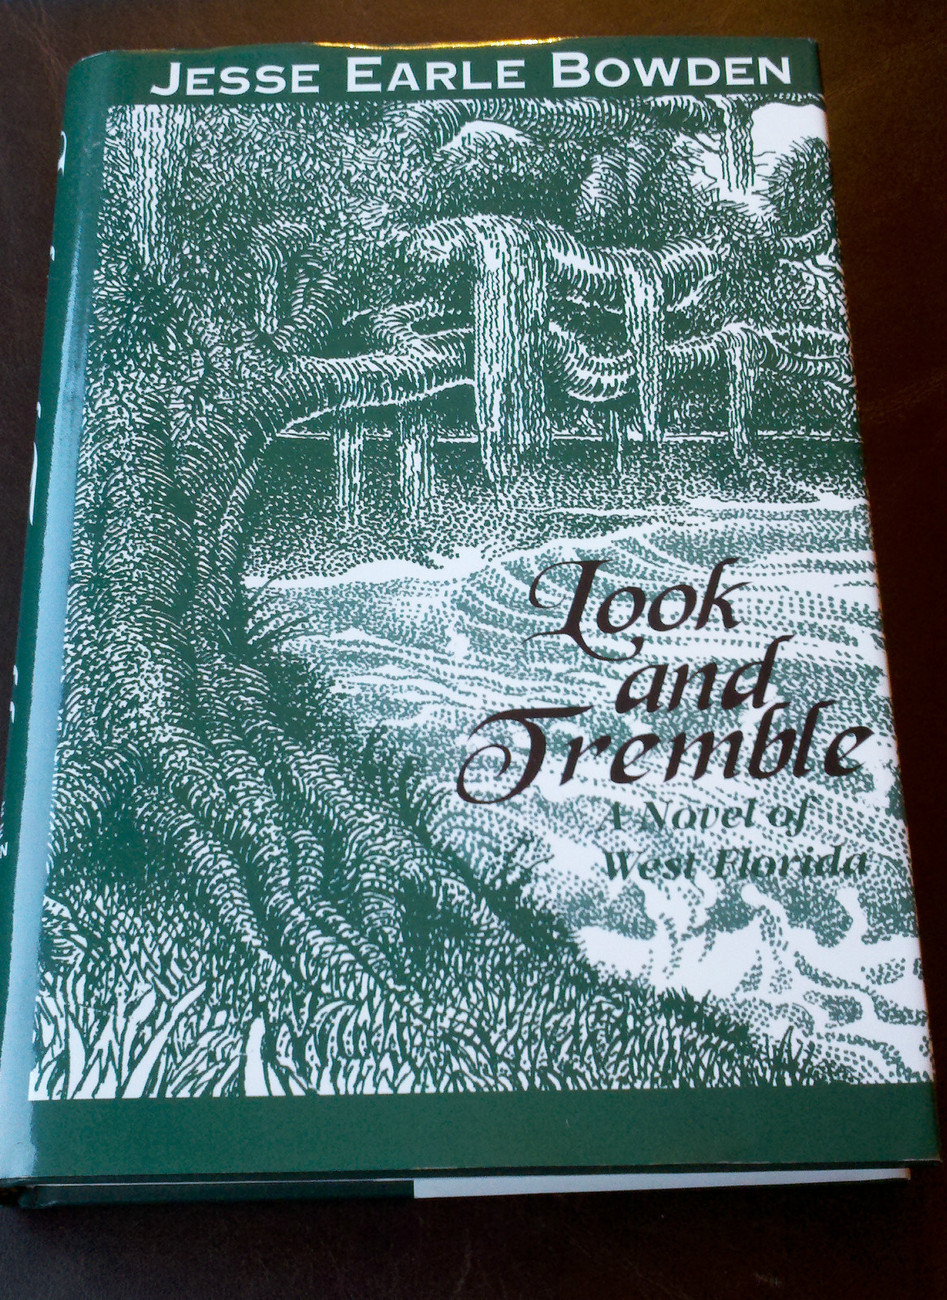 LOOK AND TREMBLE : A NOVEL OF WEST FLORIDA by JESSE EARLE BOWDEN * NEW HC & DJ *